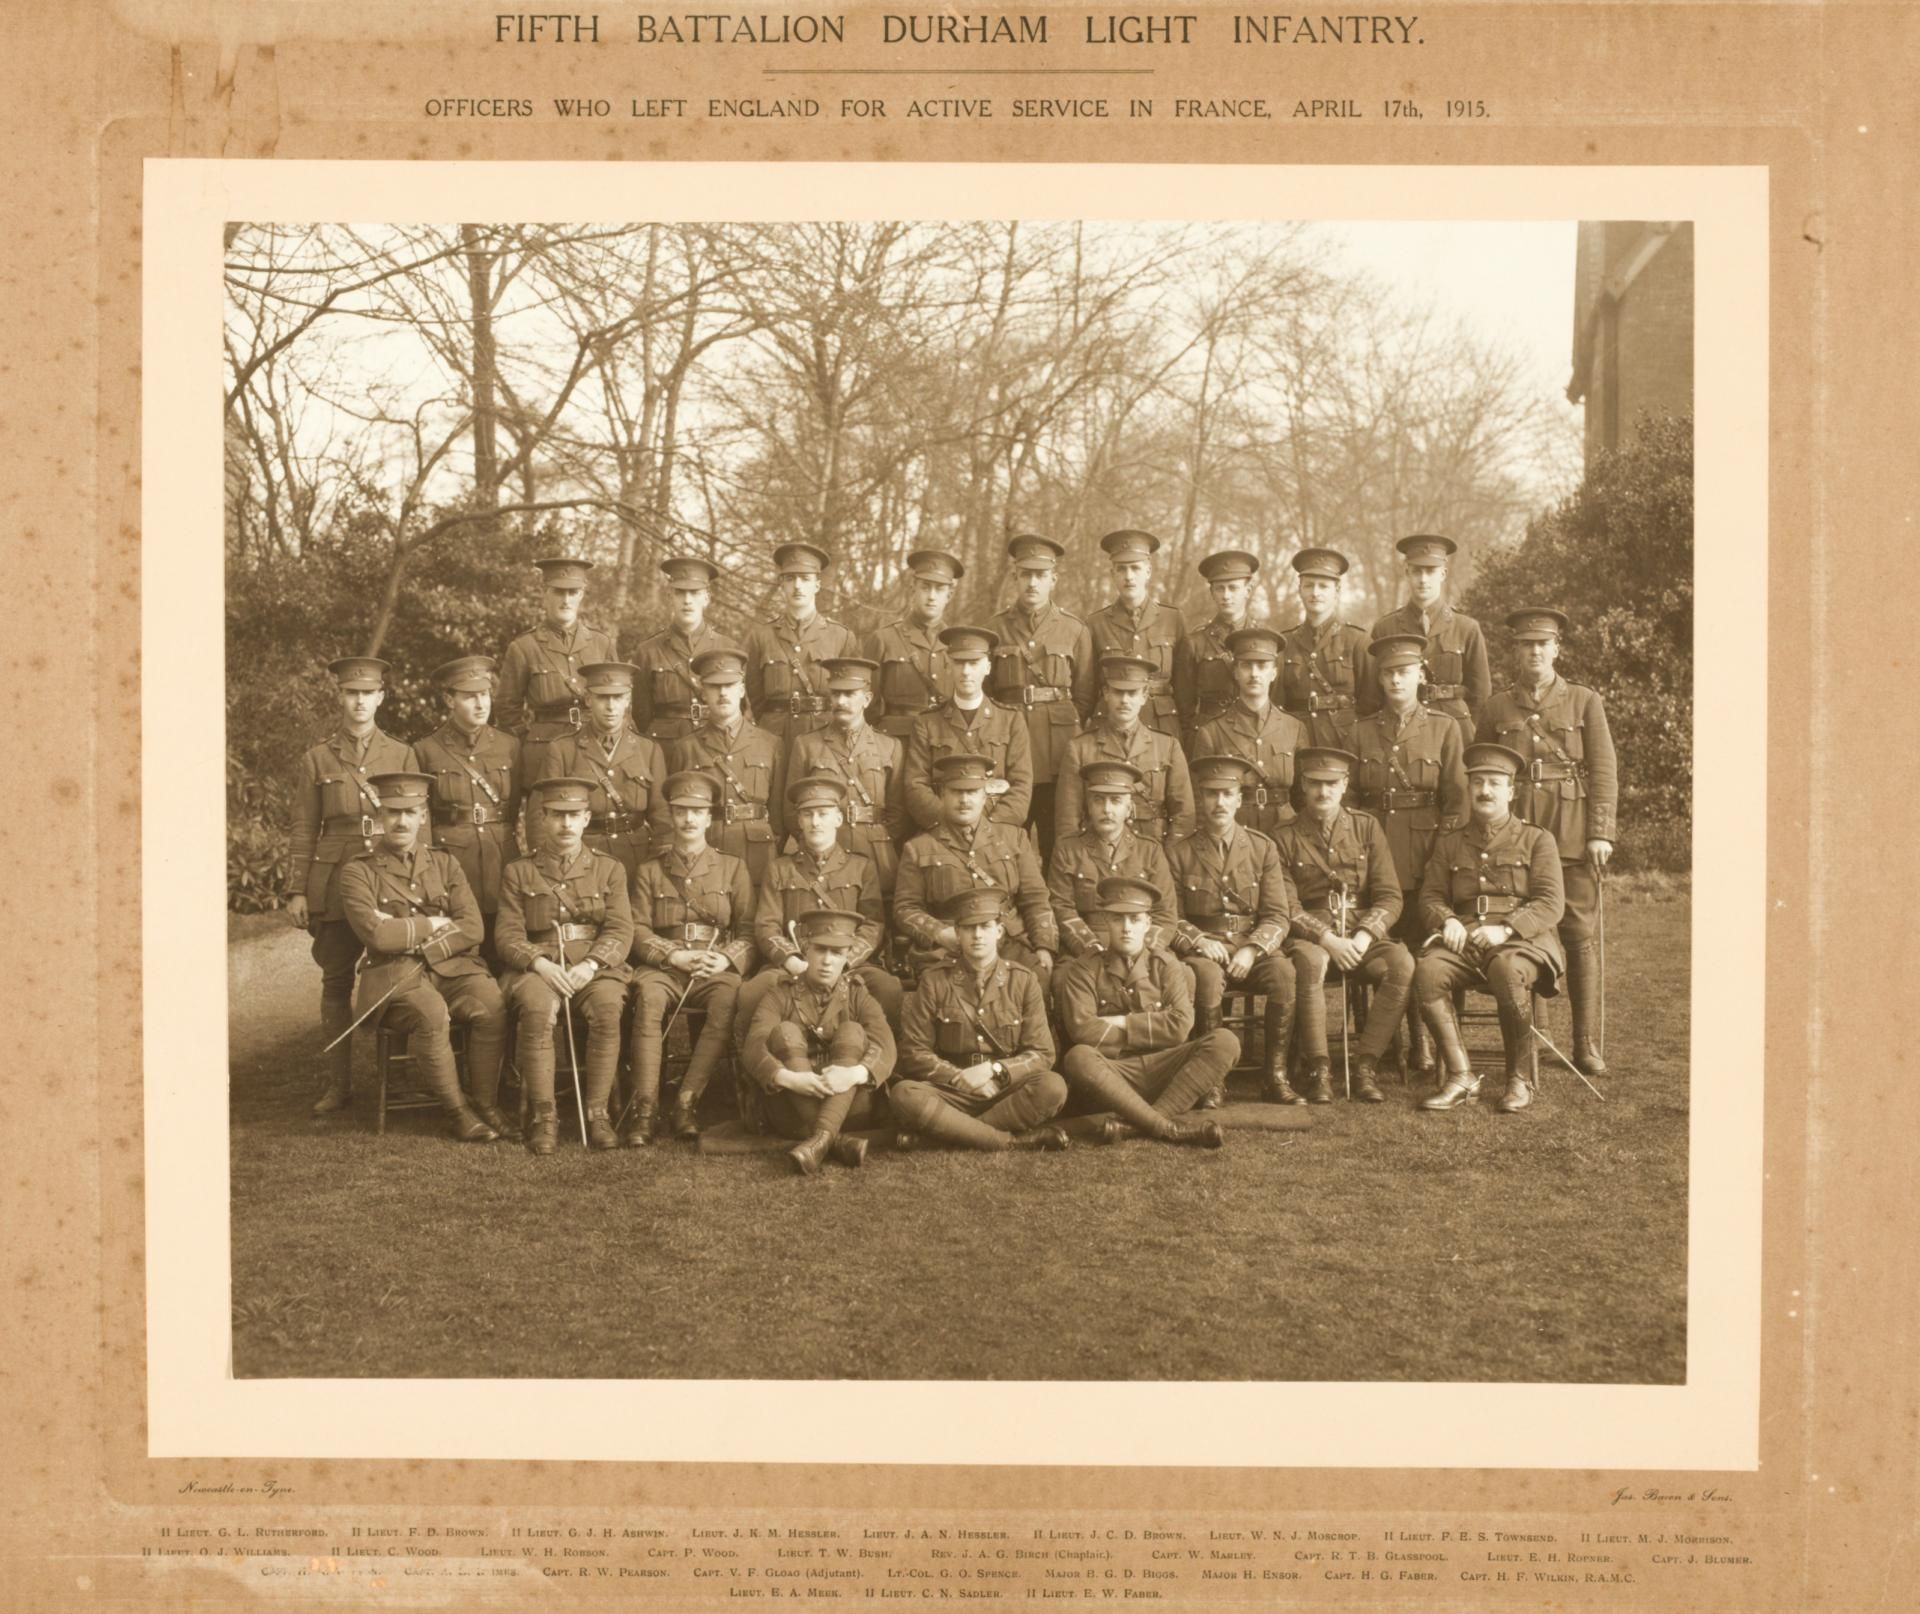 Black and white photograph of the 5th Durham Light Infantry